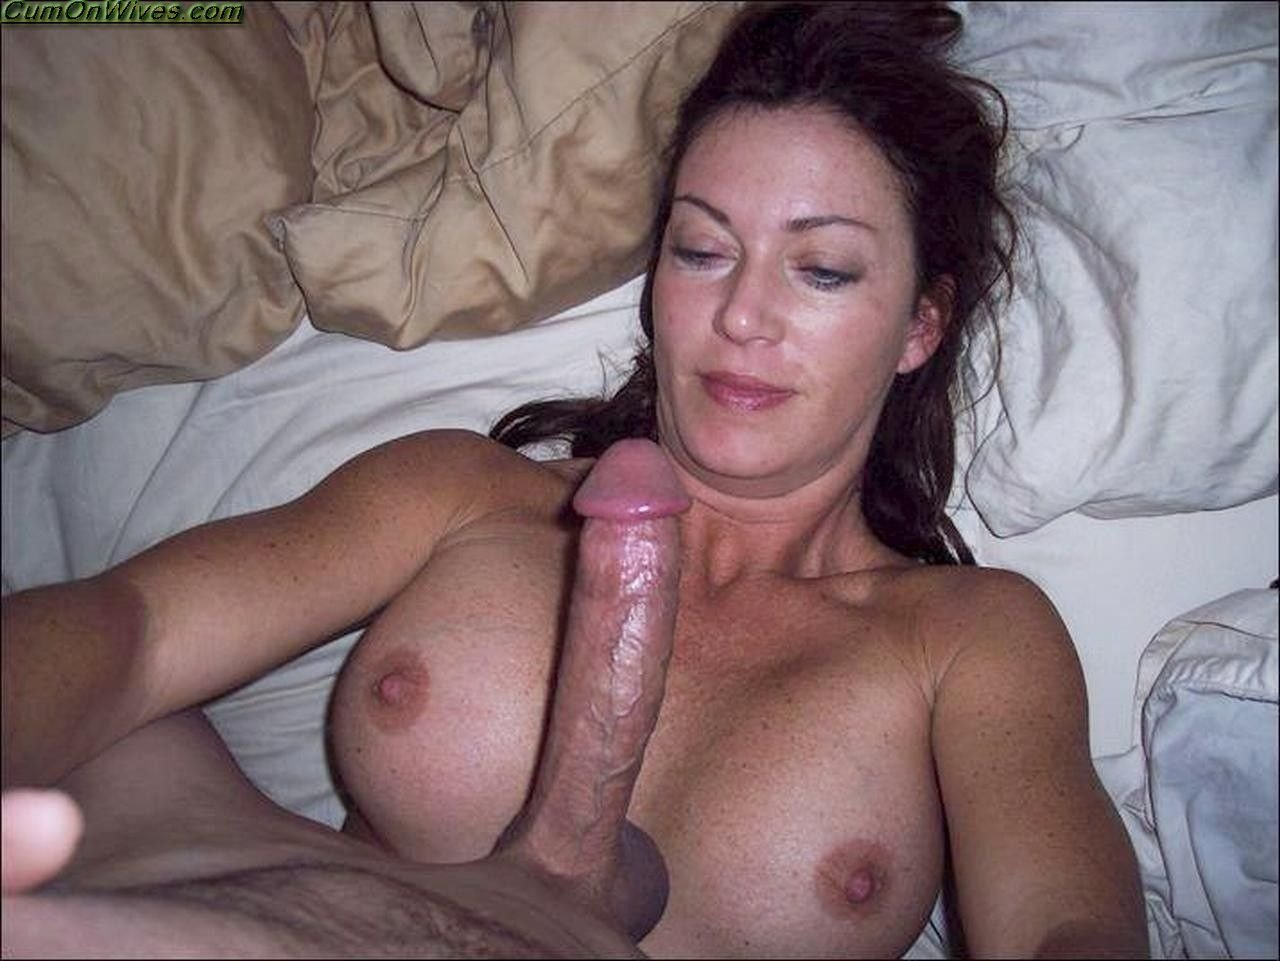 russian adult video chat